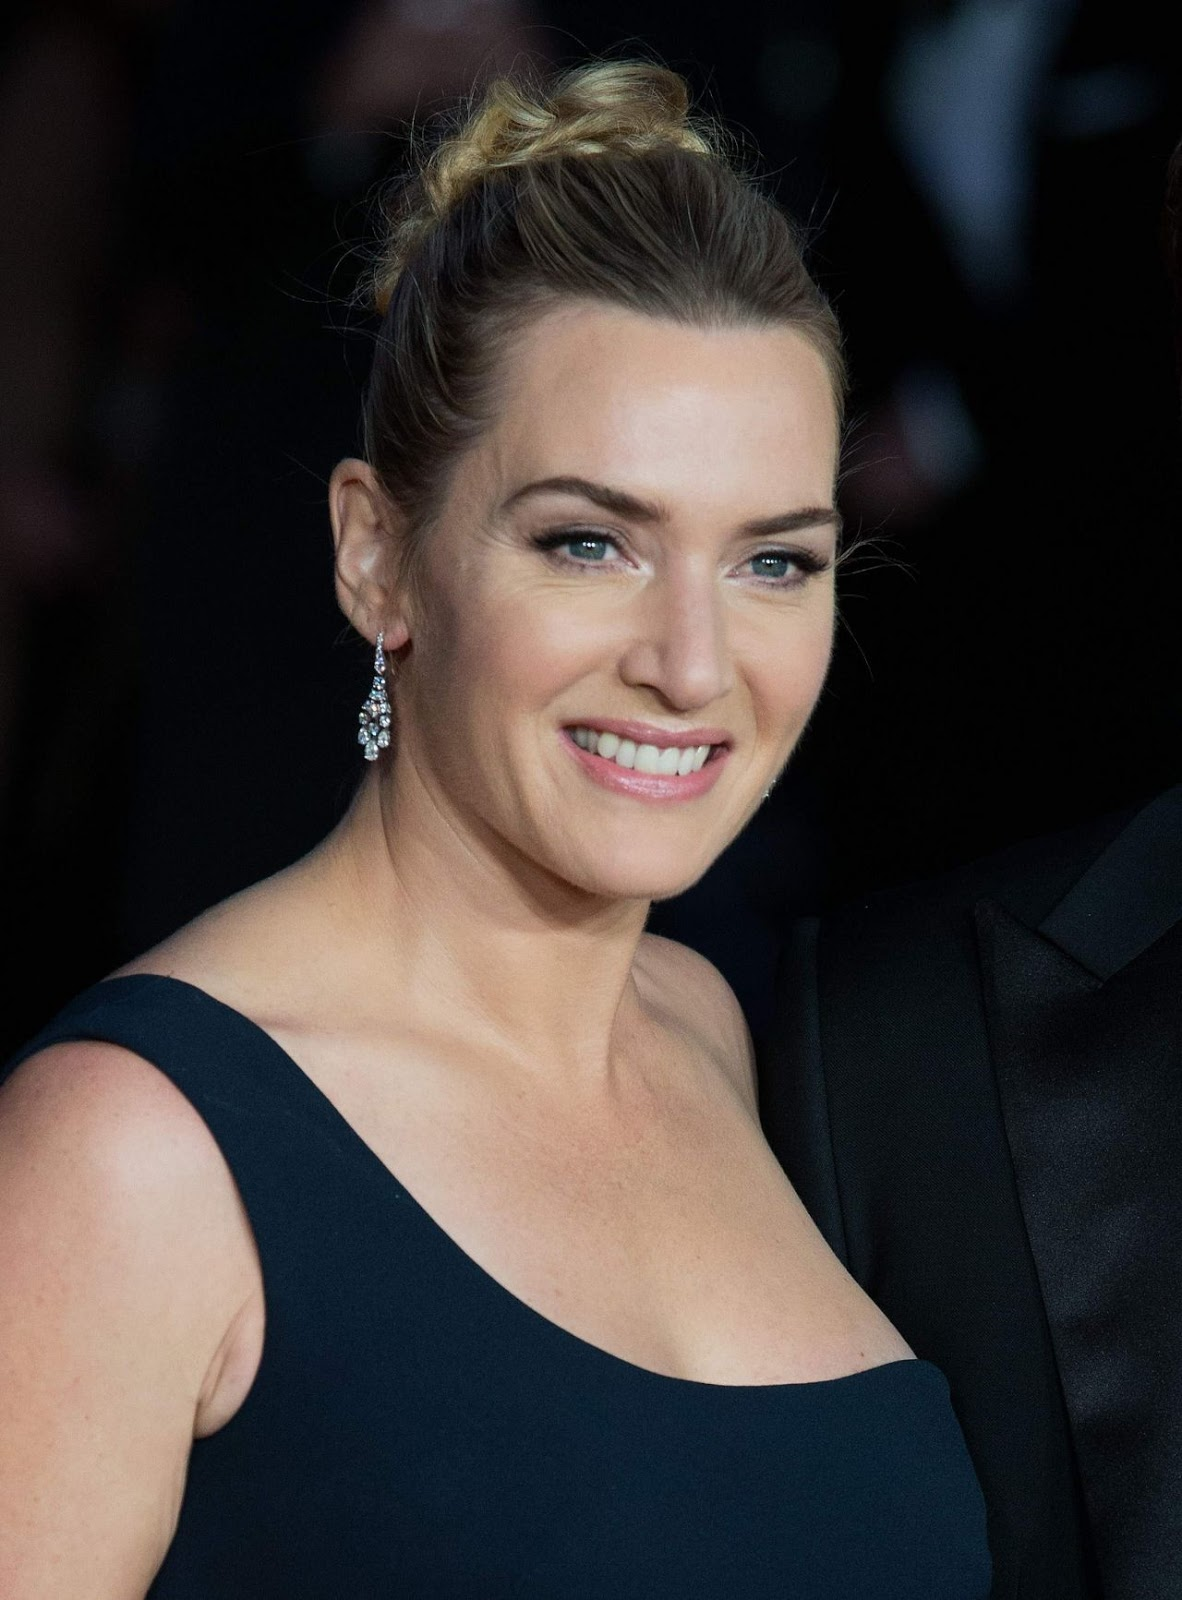 Kate Winslet flaunts figure at the 'Steve Jobs' premiere ... Kate Winslet